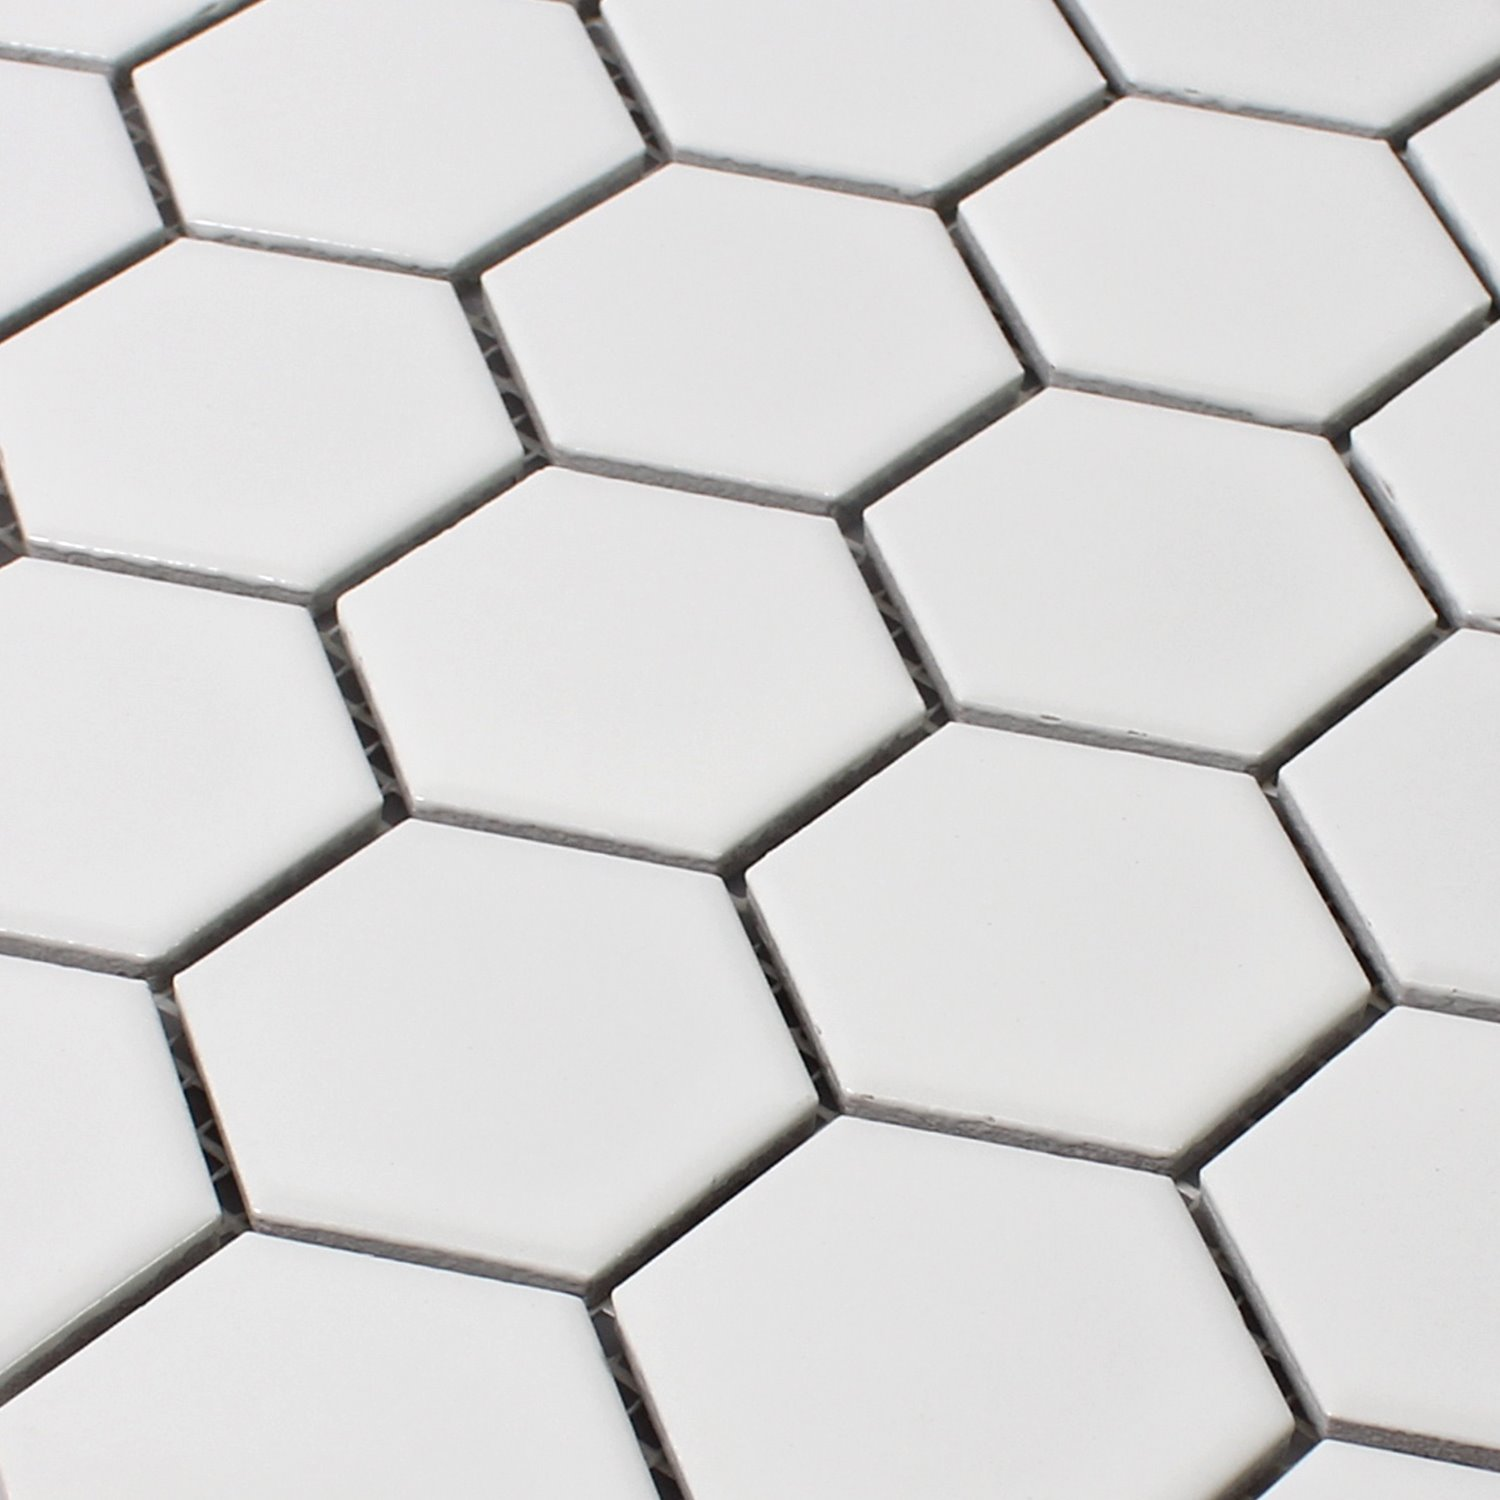 Carrelage hexagonal blanc id es de conception sont int ressants votre d cor - Carrelage hexagonal sol ...